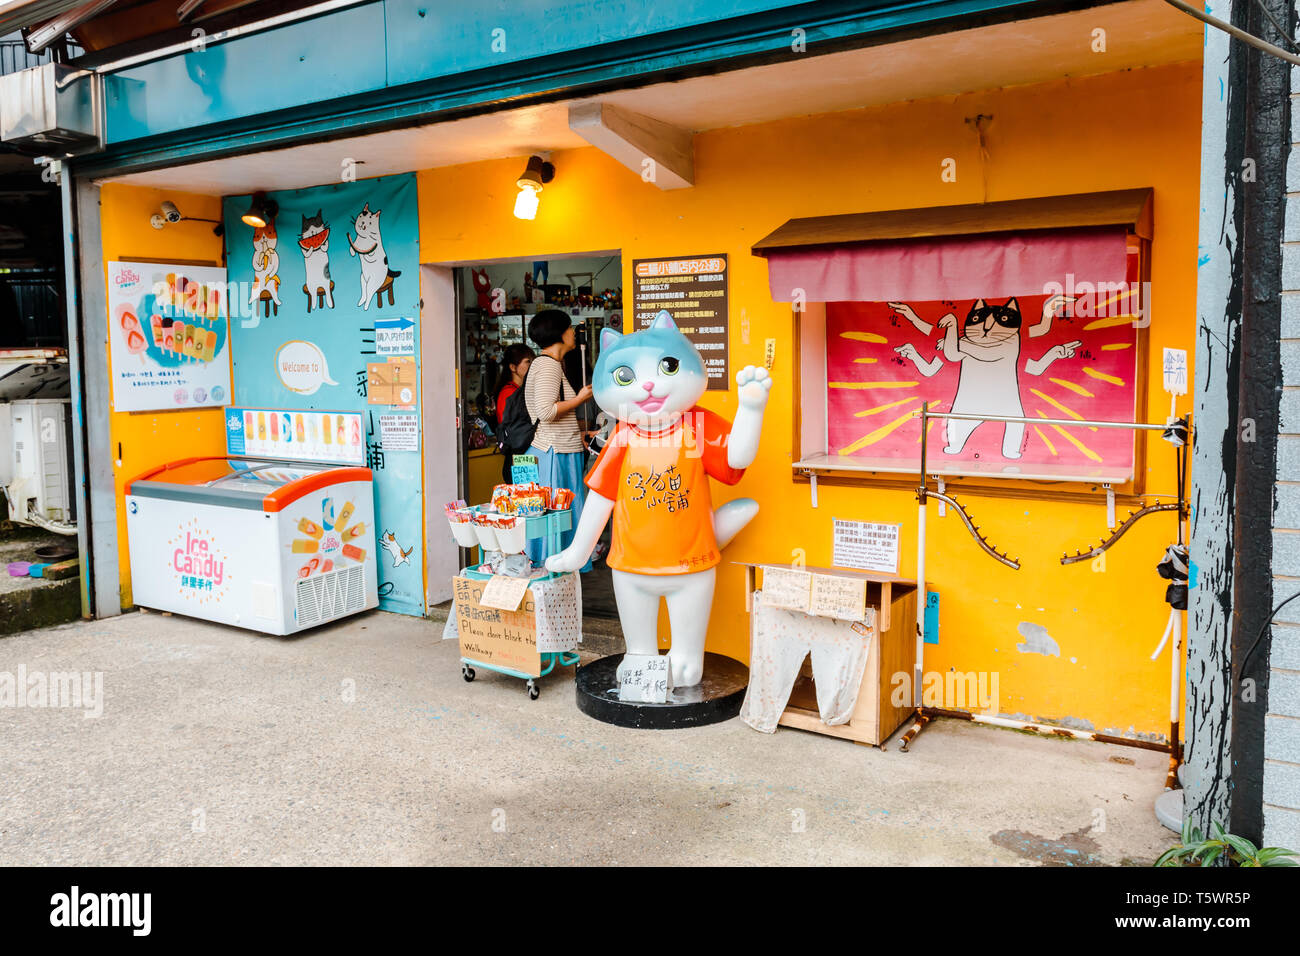 Ruifang, Taiwan : Souvenir Shop at Houtong Cat Village, a popular cat village in Ruifang district, with Cat greeting statue in the front - Stock Image